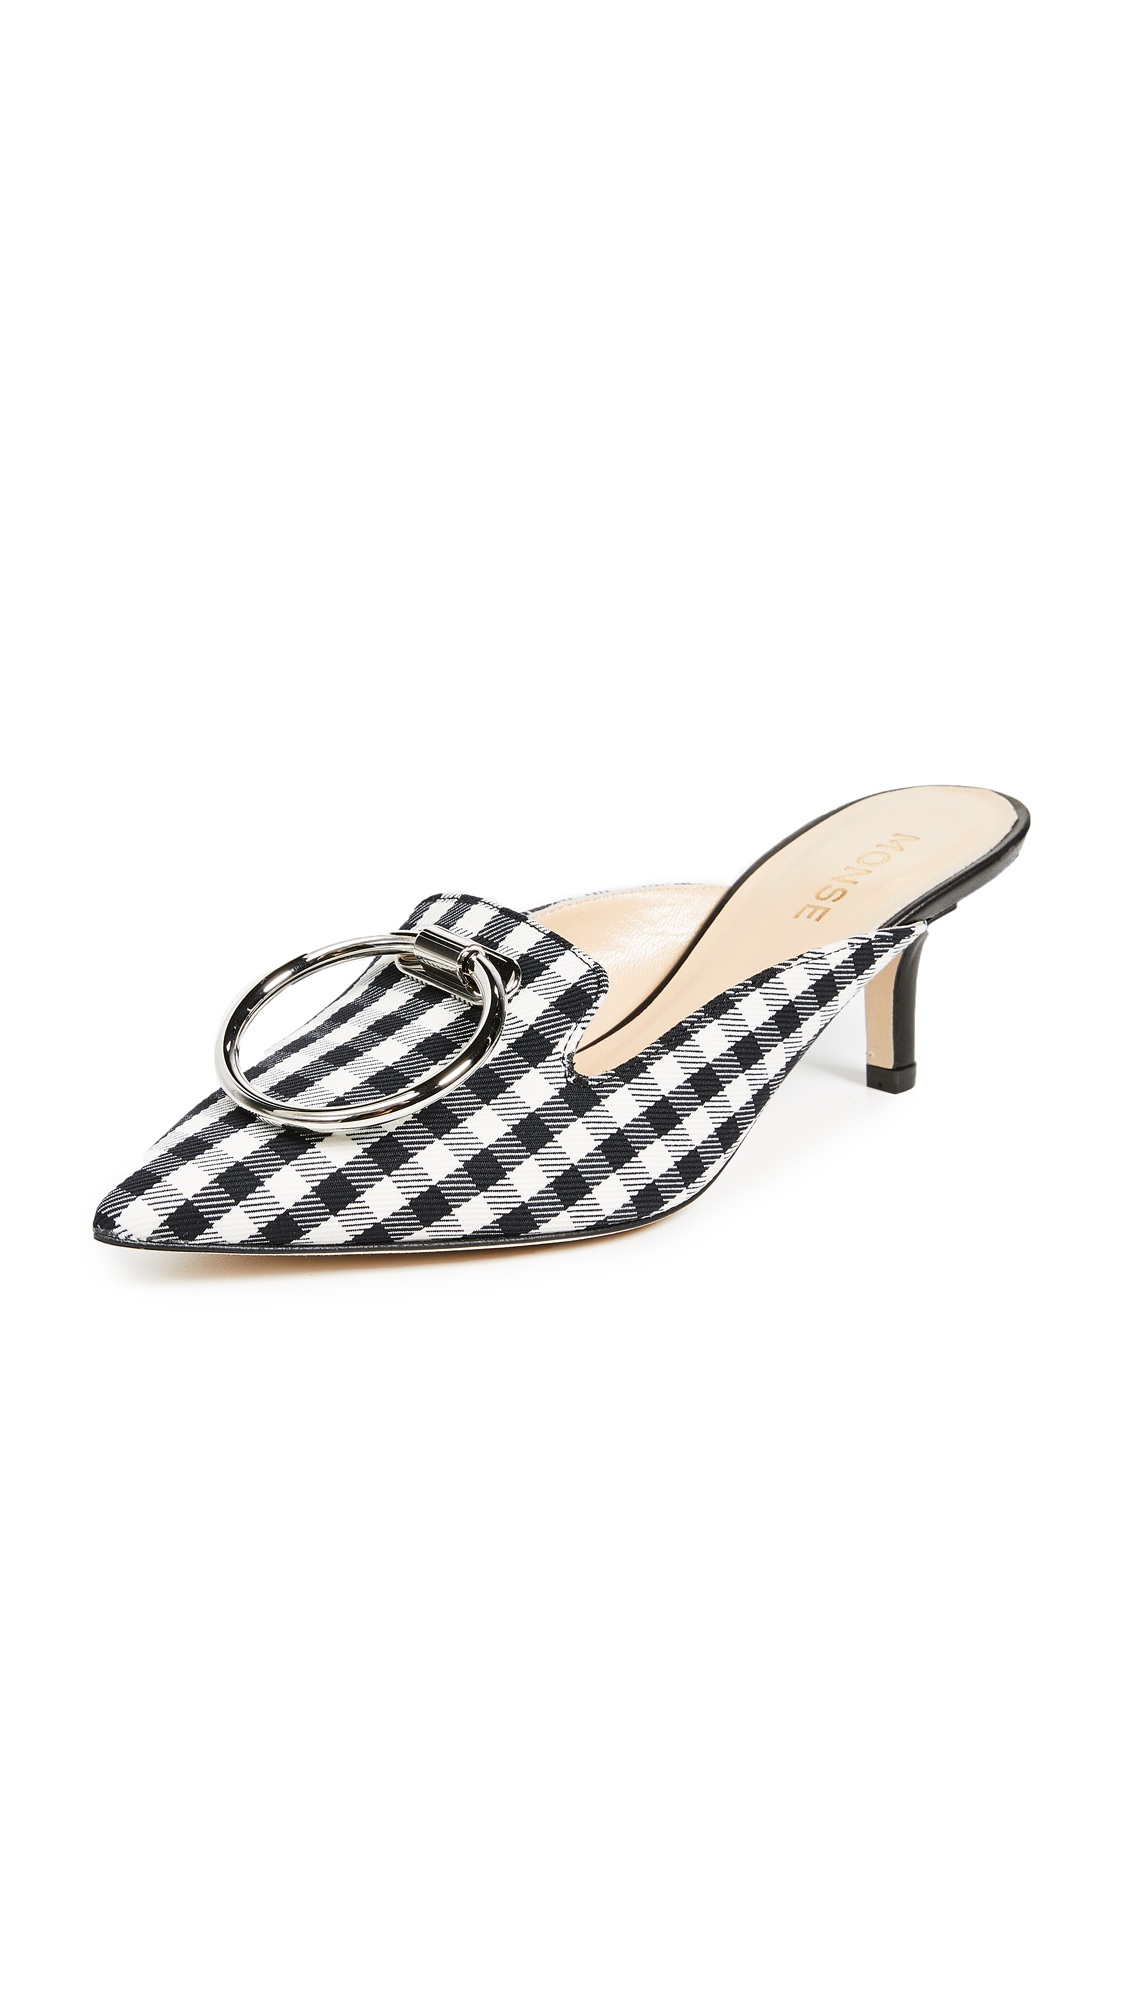 Gingham Mules in Black